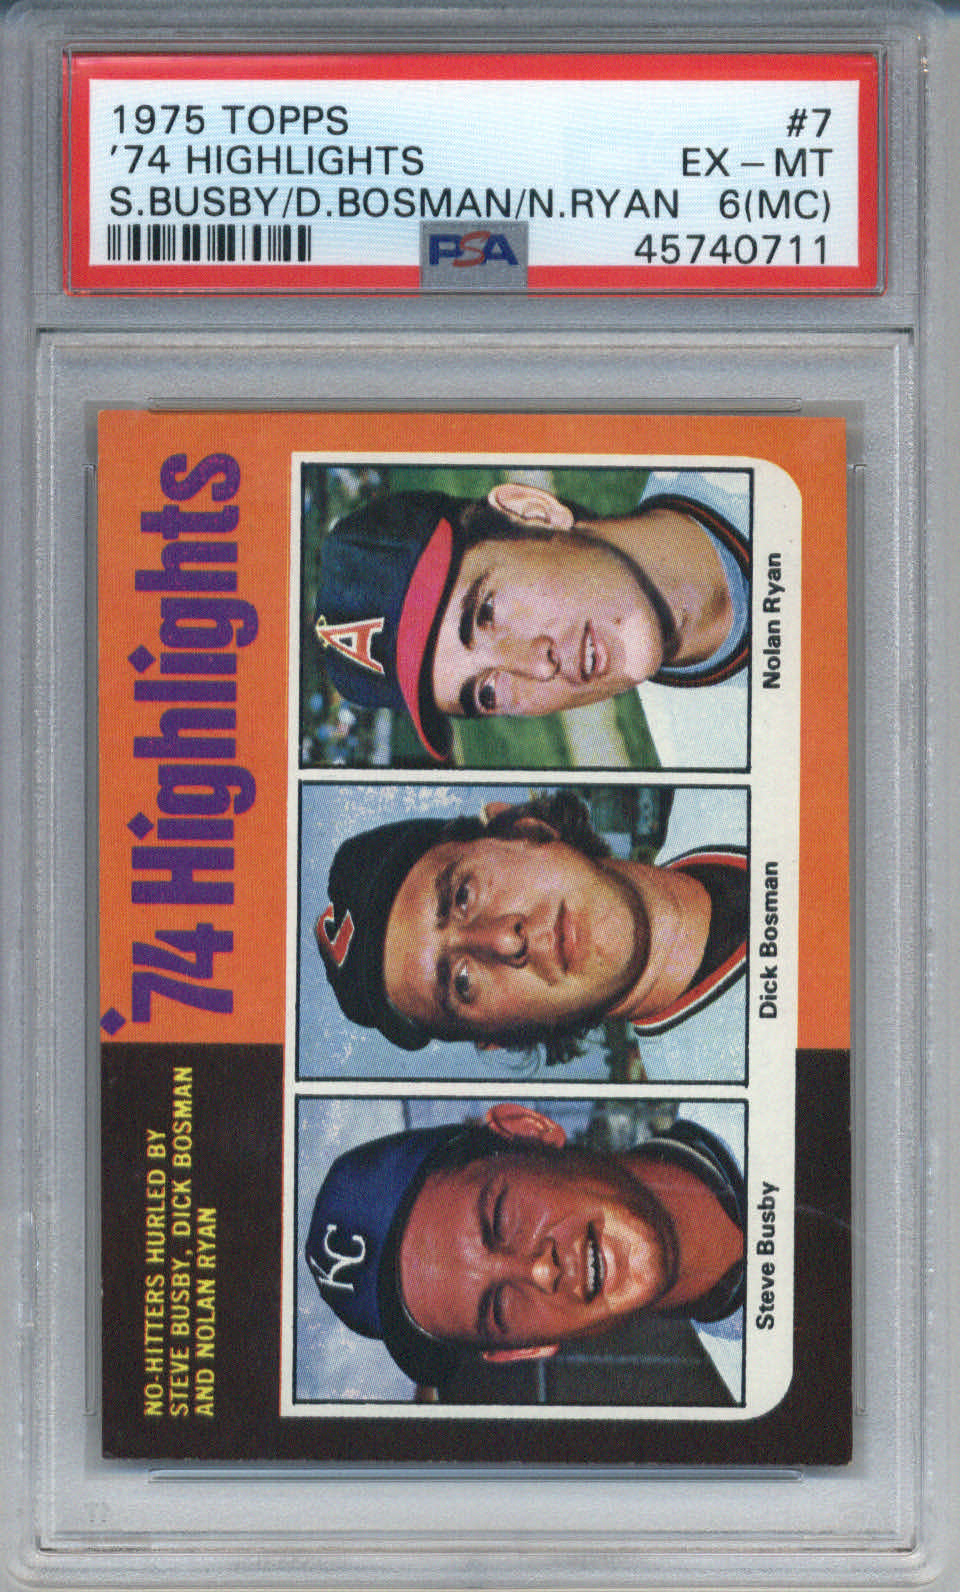 1975 Topps '74 Highlights #7 Busby/Bosman/Ryan PSA 6(MC)